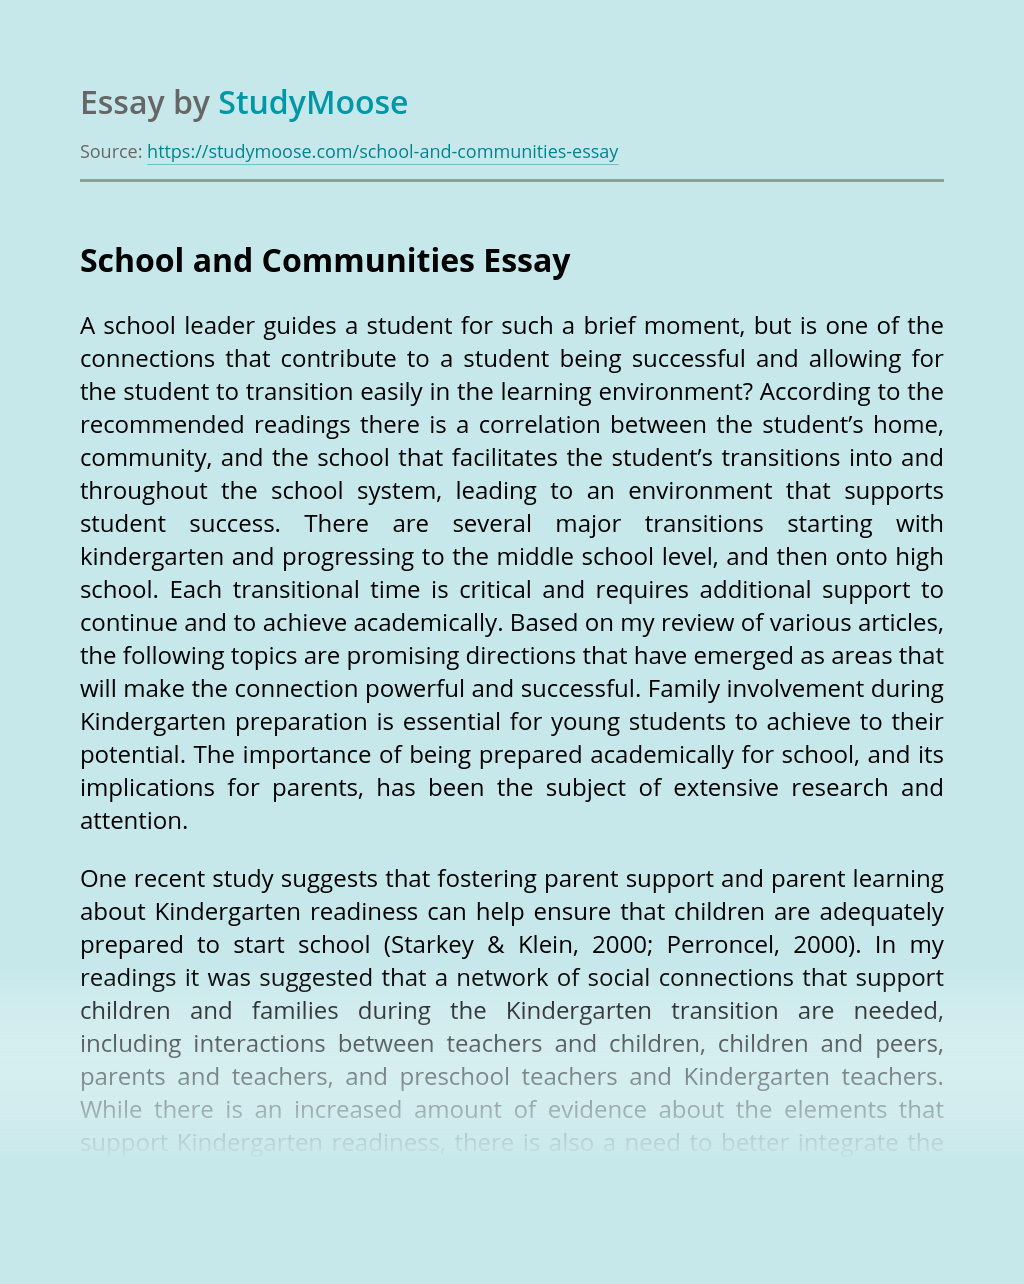 School and Communities